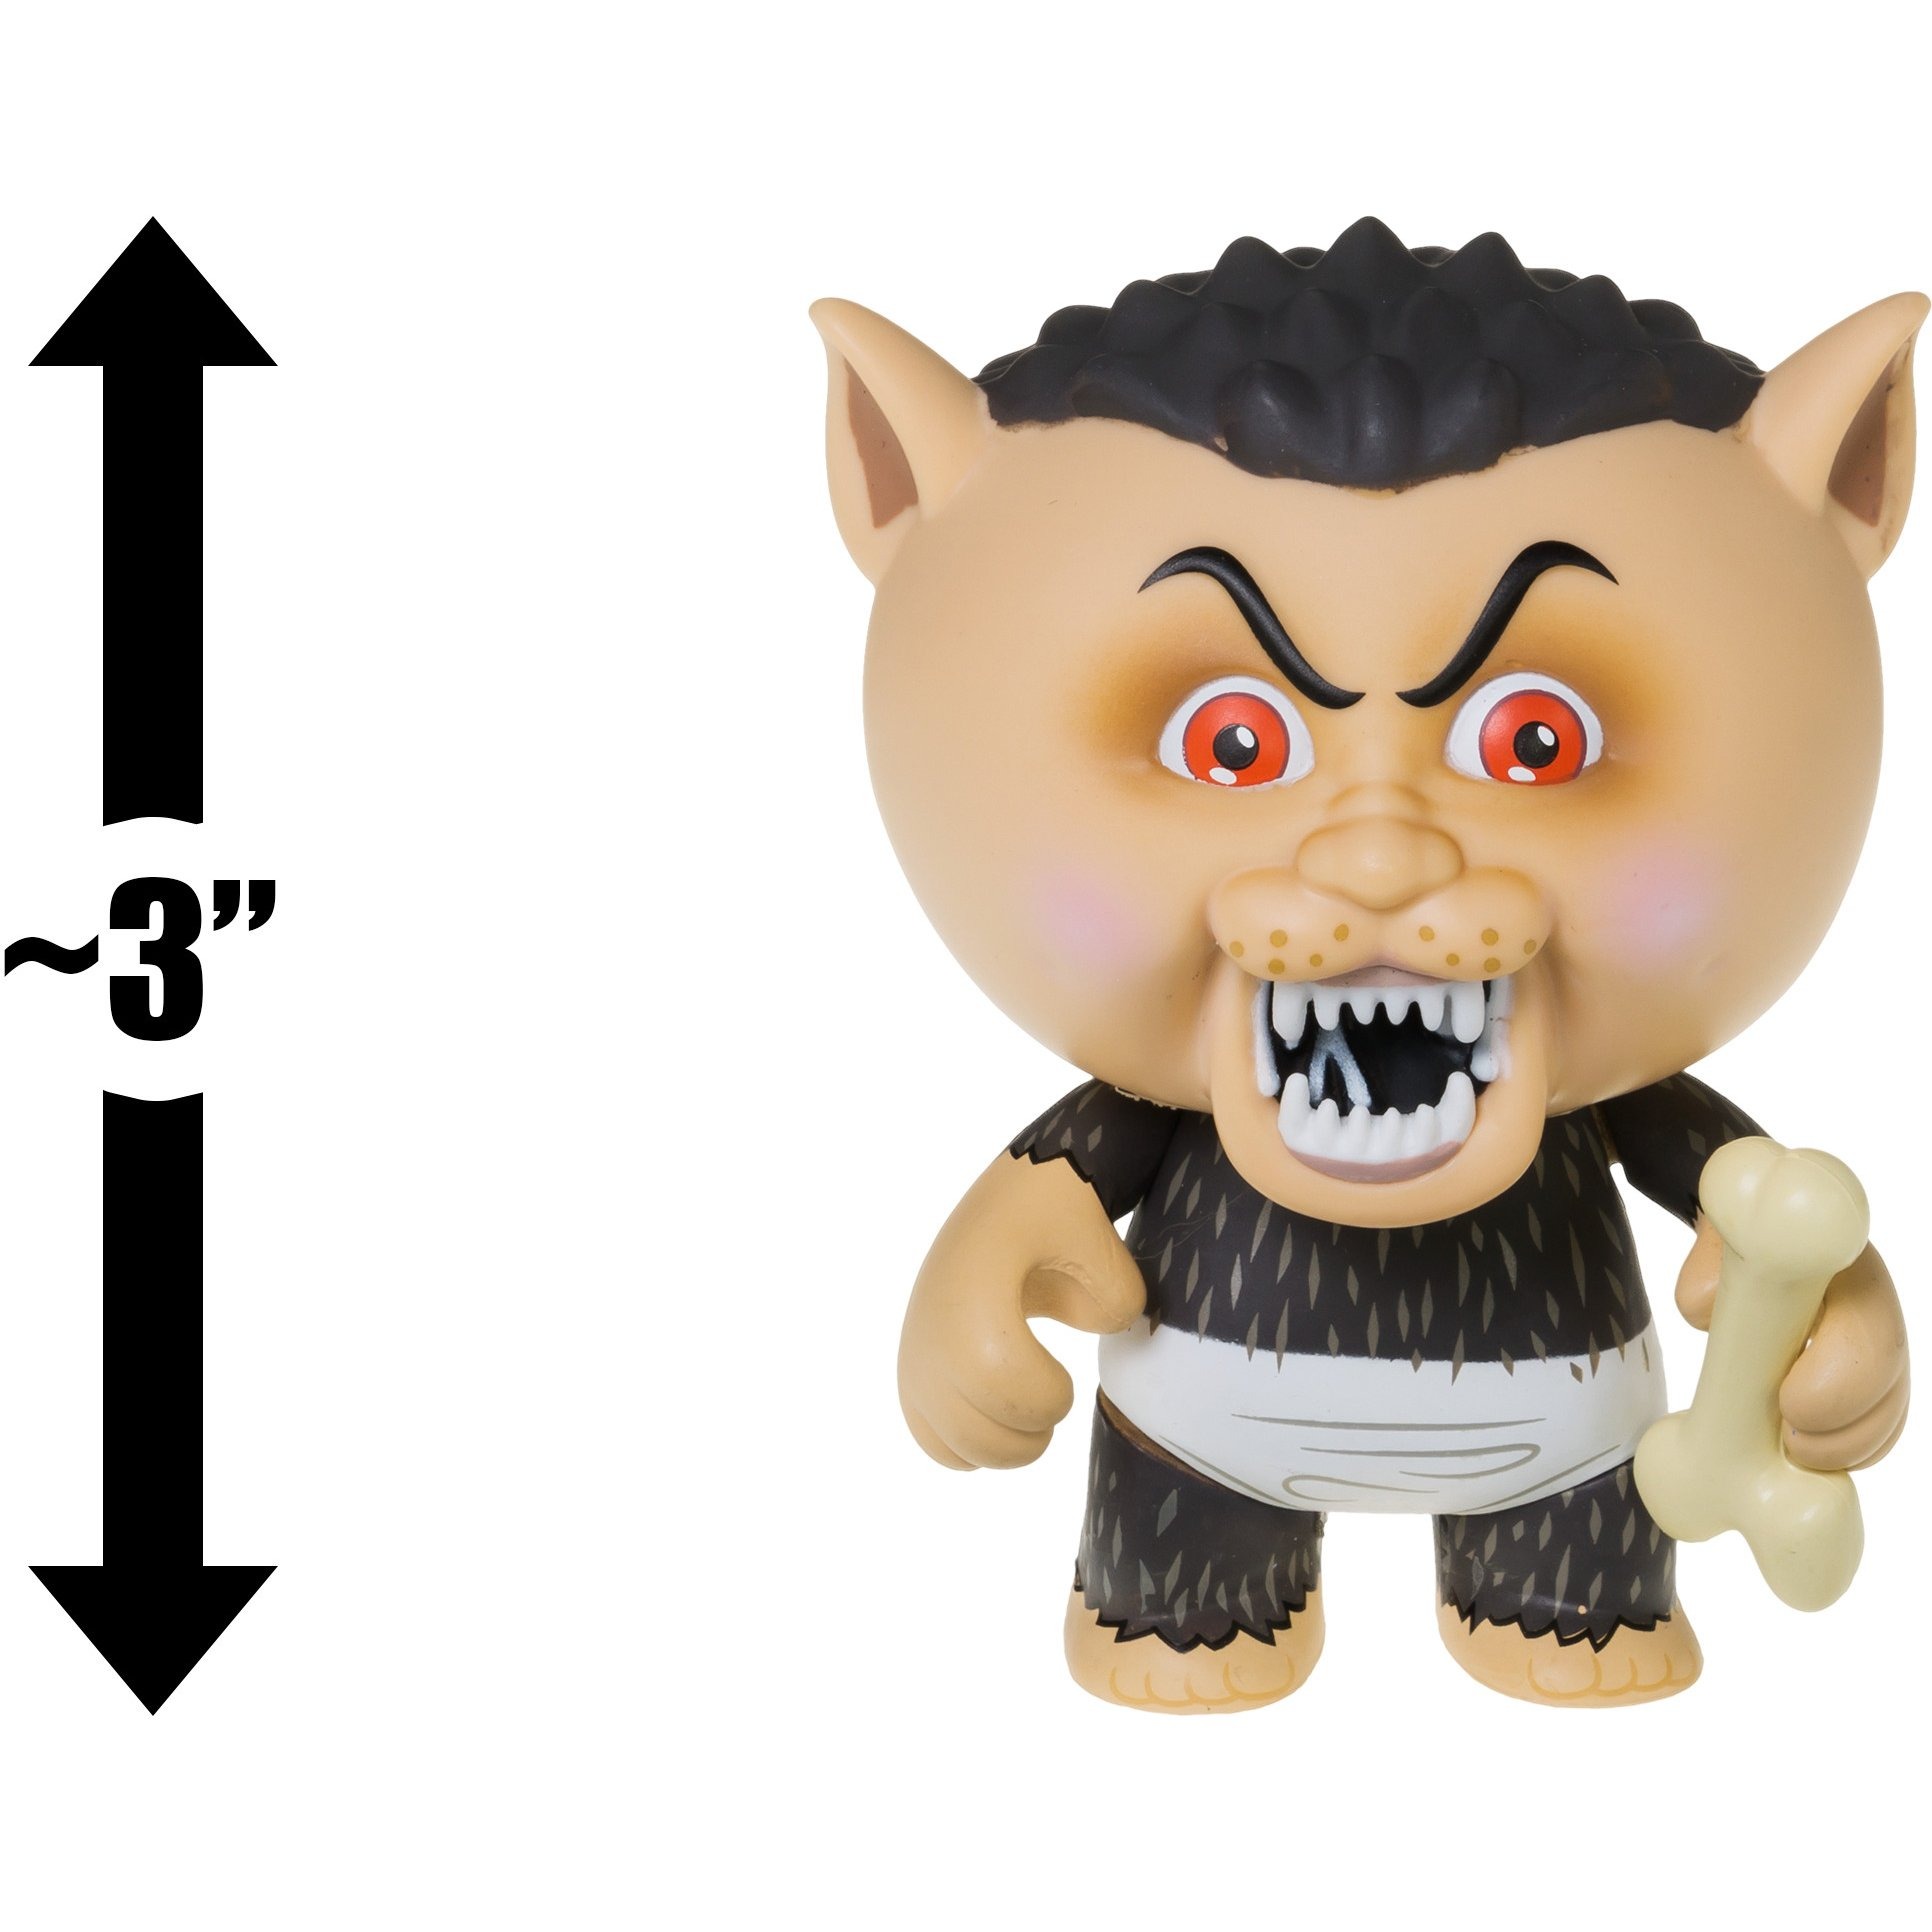 Eerie Eric: ~3'' Garbage Pail Kids x Funko Mystery Minis Mini-Figure Series #2 + 1 FREE GPK Trading Card/Sticker Bundle (108454) by Garbage Pail Kids (Image #3)